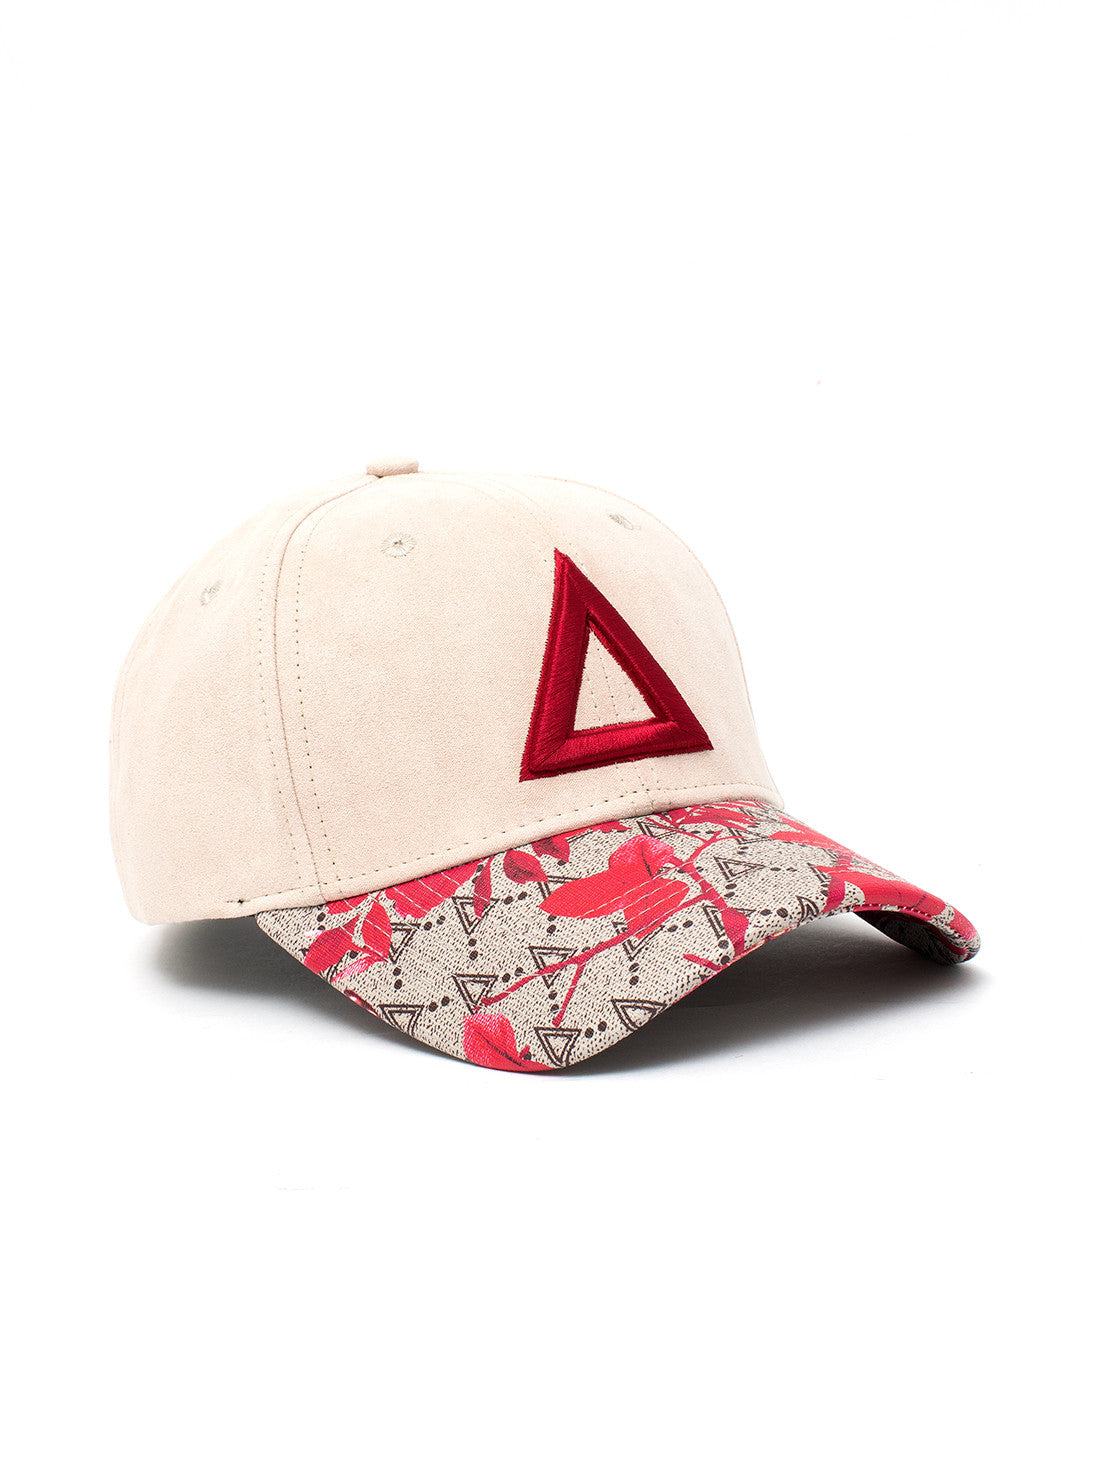 Limited Bird/Flower Red Triswag - Triangulo Swag